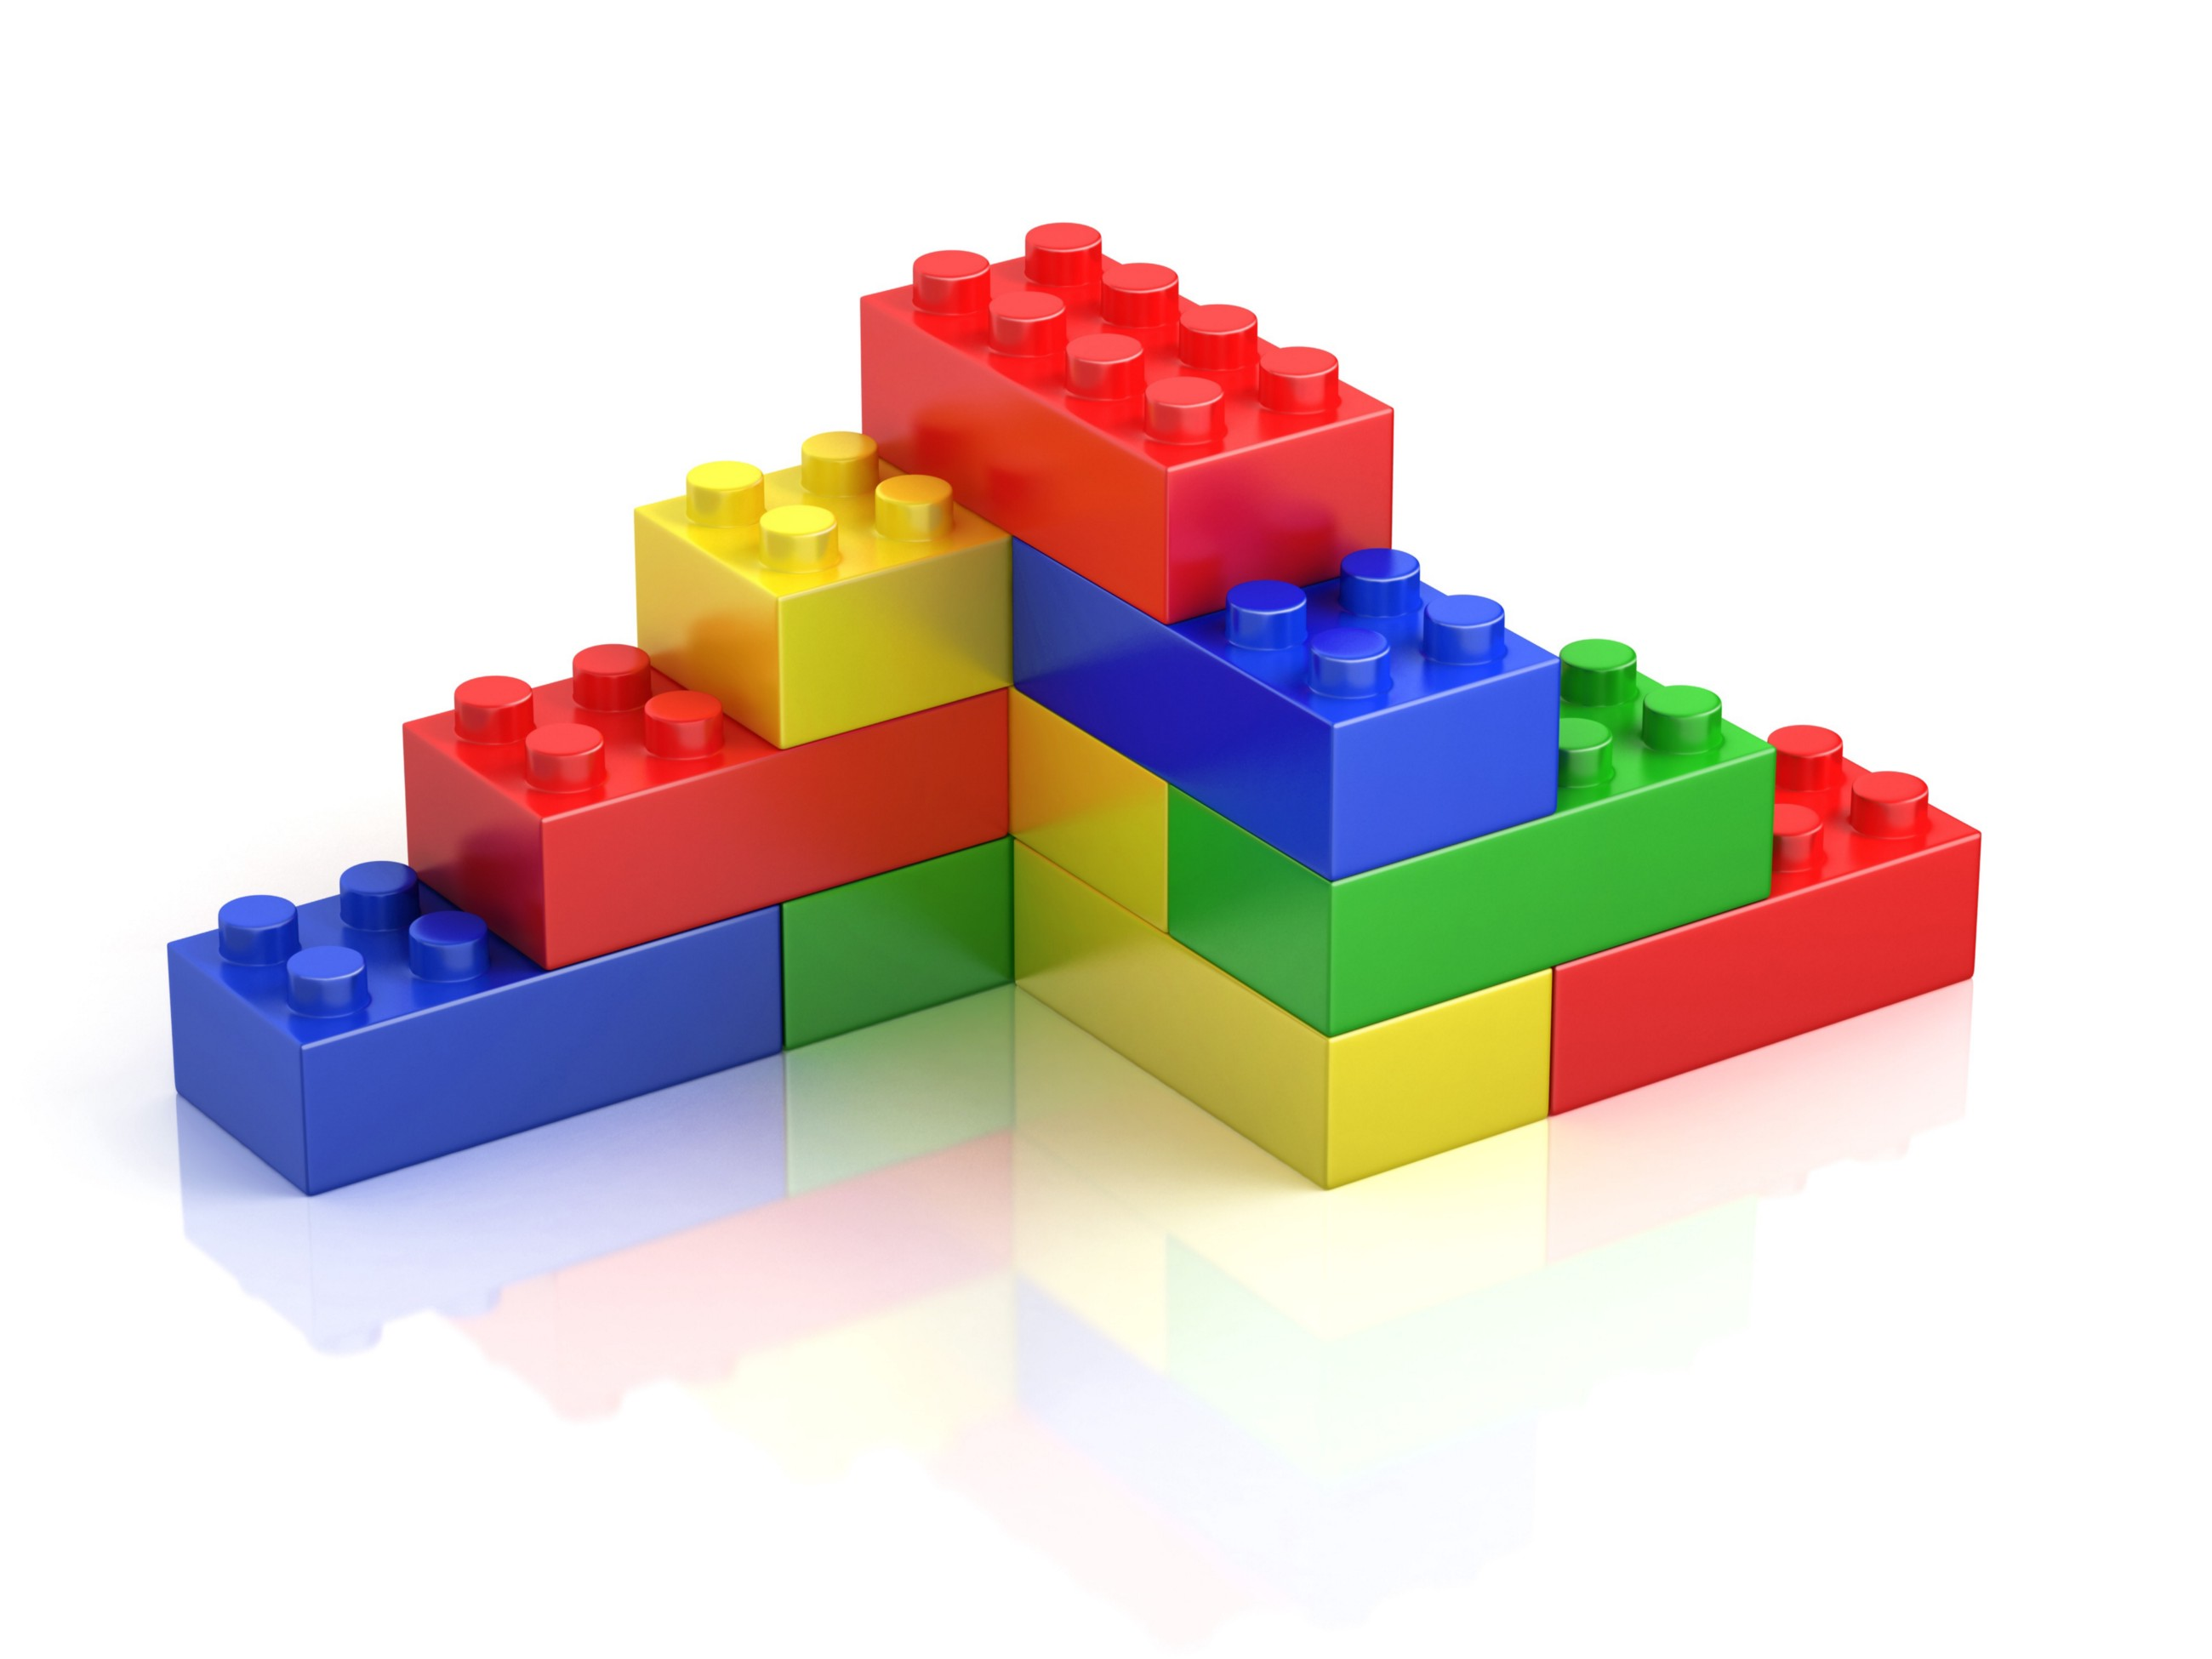 Five reasons why Web Components could complement JavaScript frameworks